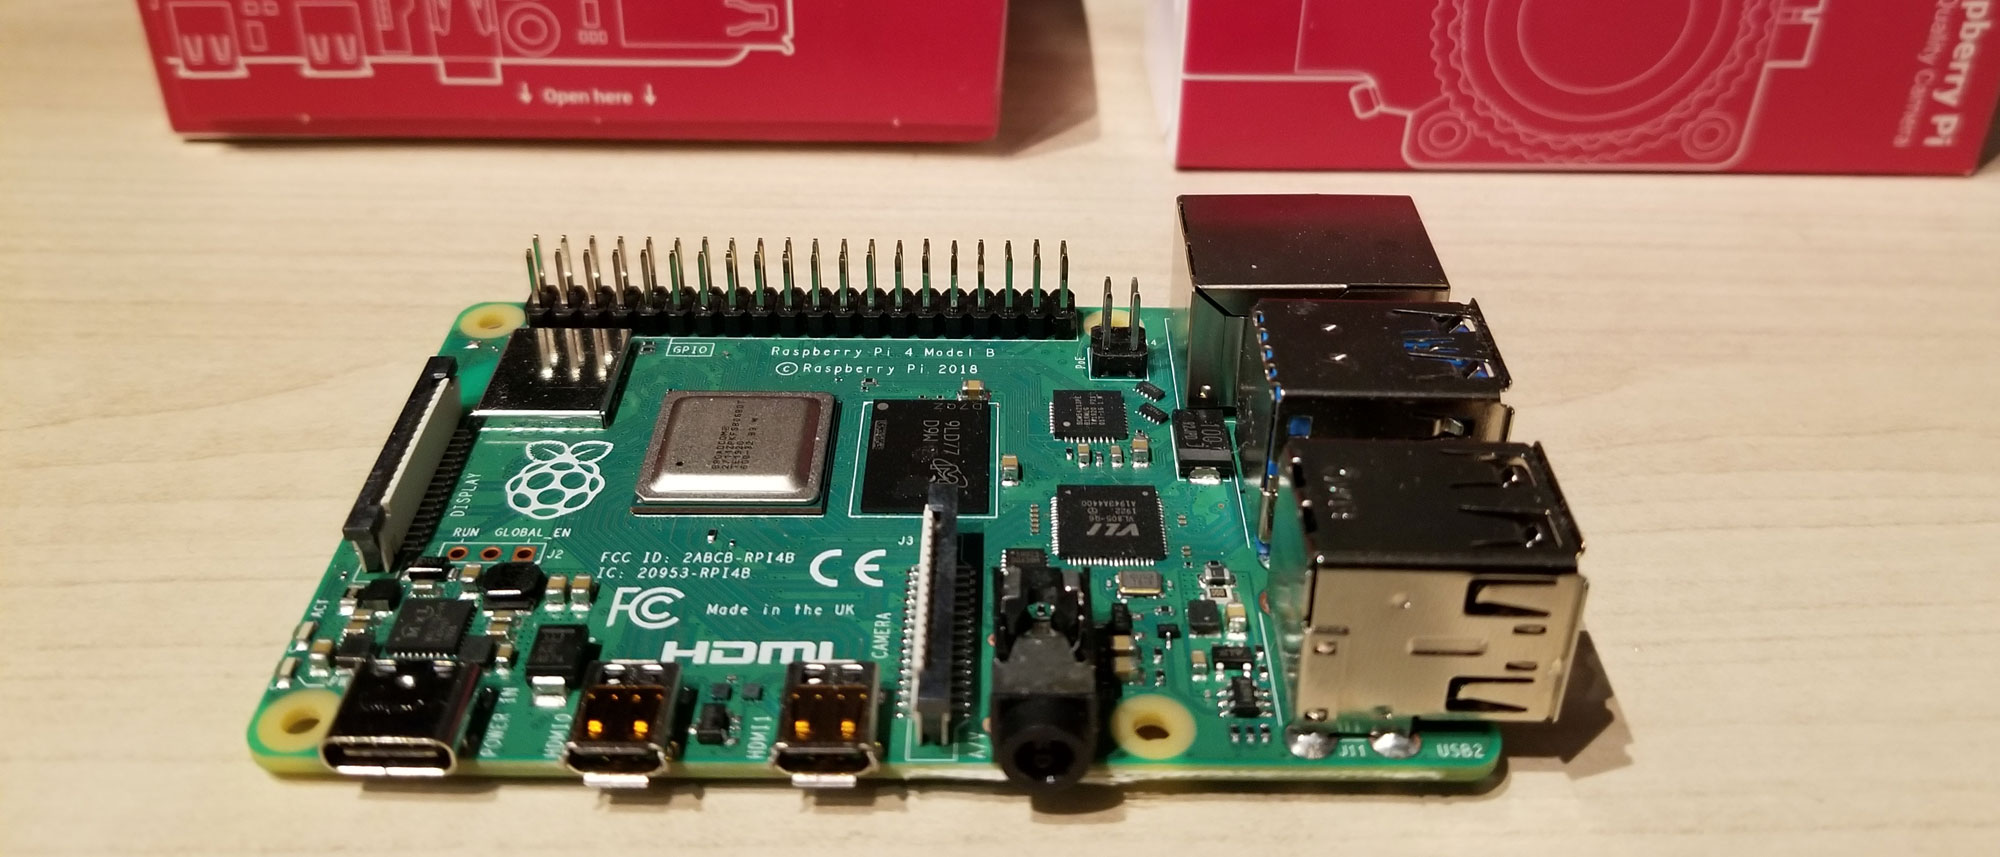 Raspberry Pi 4 (8GB) Tested: Double the RAM, New 64-Bit OS